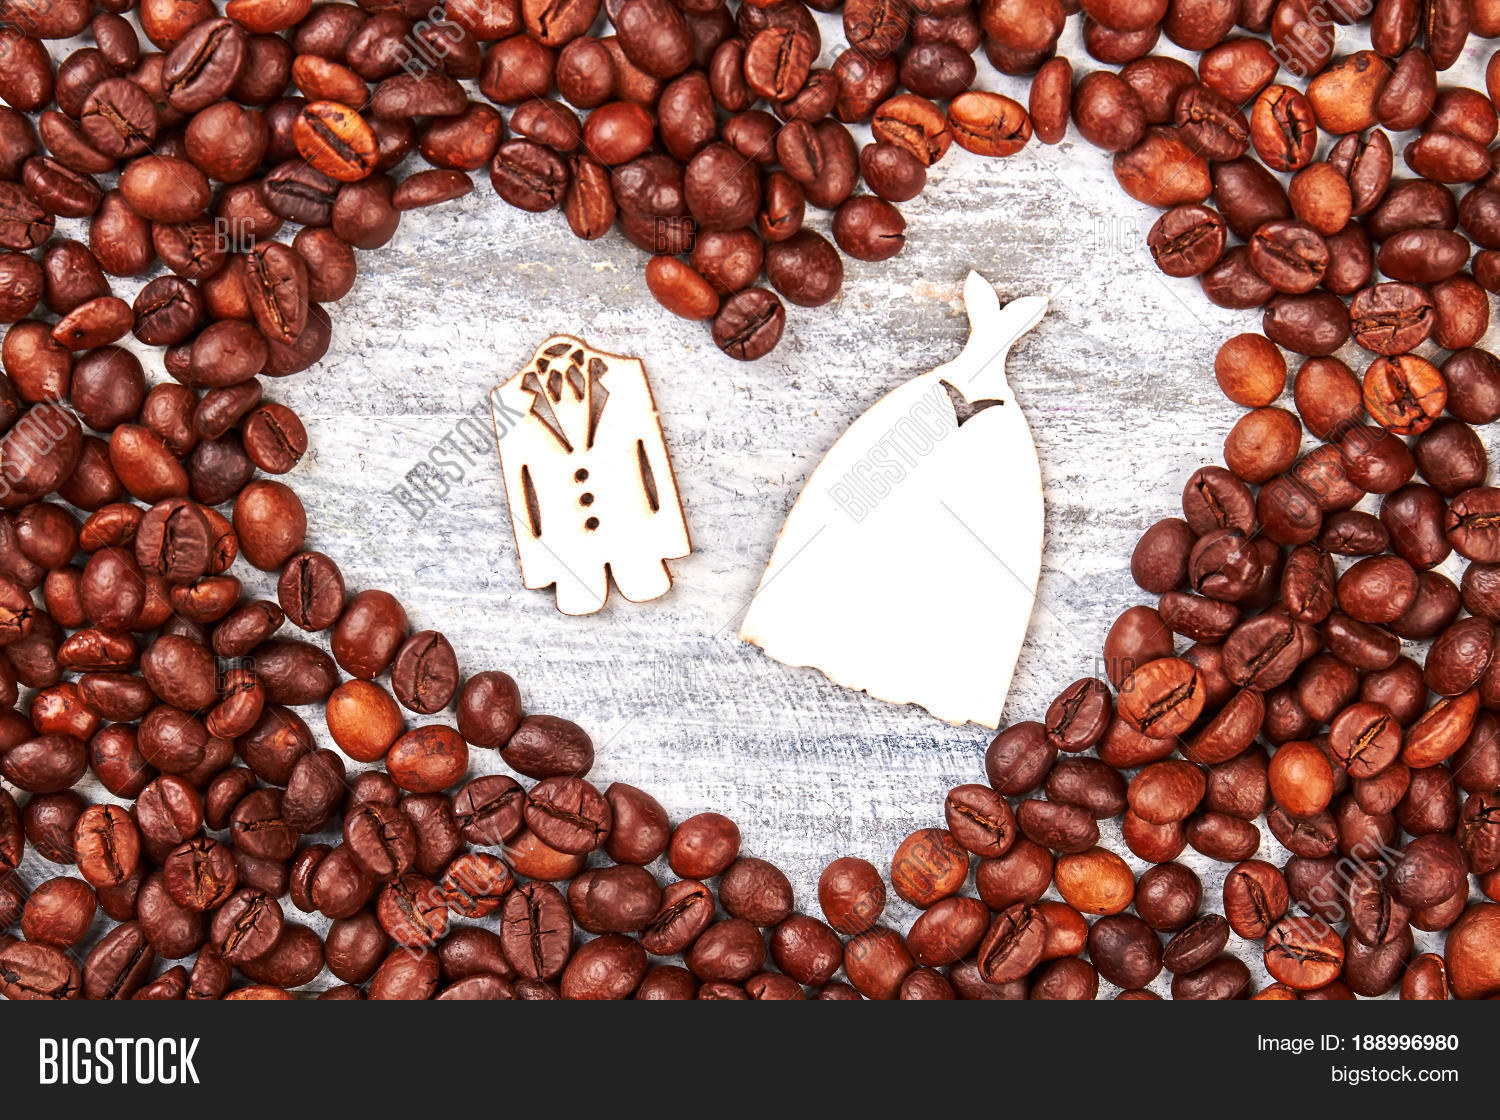 accessory,arabica,aroma,aromatic,background,bean,beverage,black,breakfast,brown,cafe,caffeine,cappuccino,cardboard,celebration,closeup,coffee,dark,decoration,dress,drink,energy,espresso,figure,food,frame,fresh,freshness,gourmet,grain,heart,ingredient,love,marrige,morning,natural,restaurant,retro,roast,roasted,romantic,seed,shape,space,style,symbol,texture,tuxedo,valentine,wooden